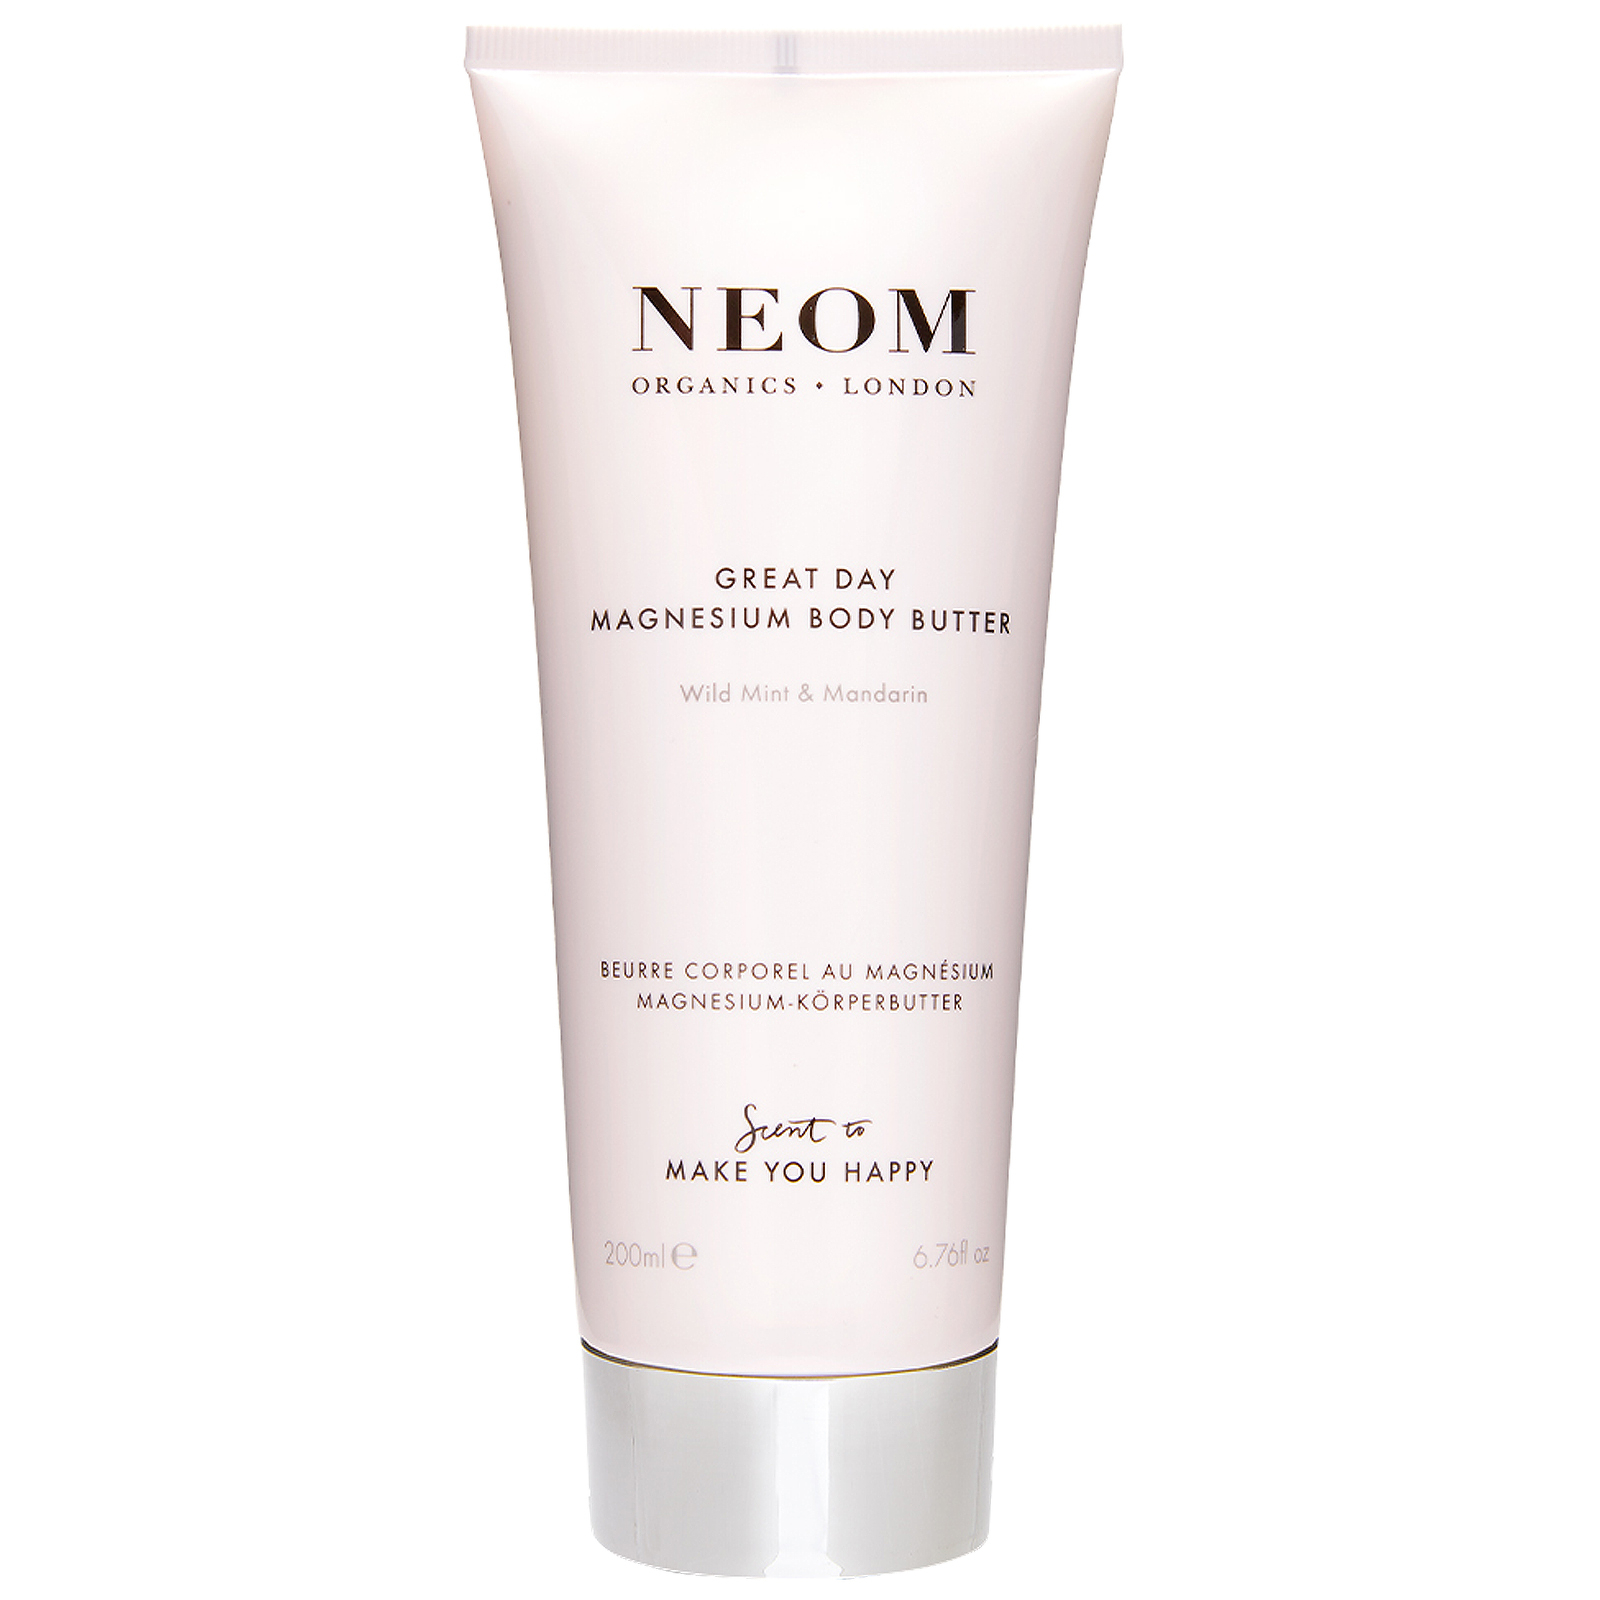 Neom Organics London Scent To Make You Happy Great Day Magnesium Body Butter 200ml